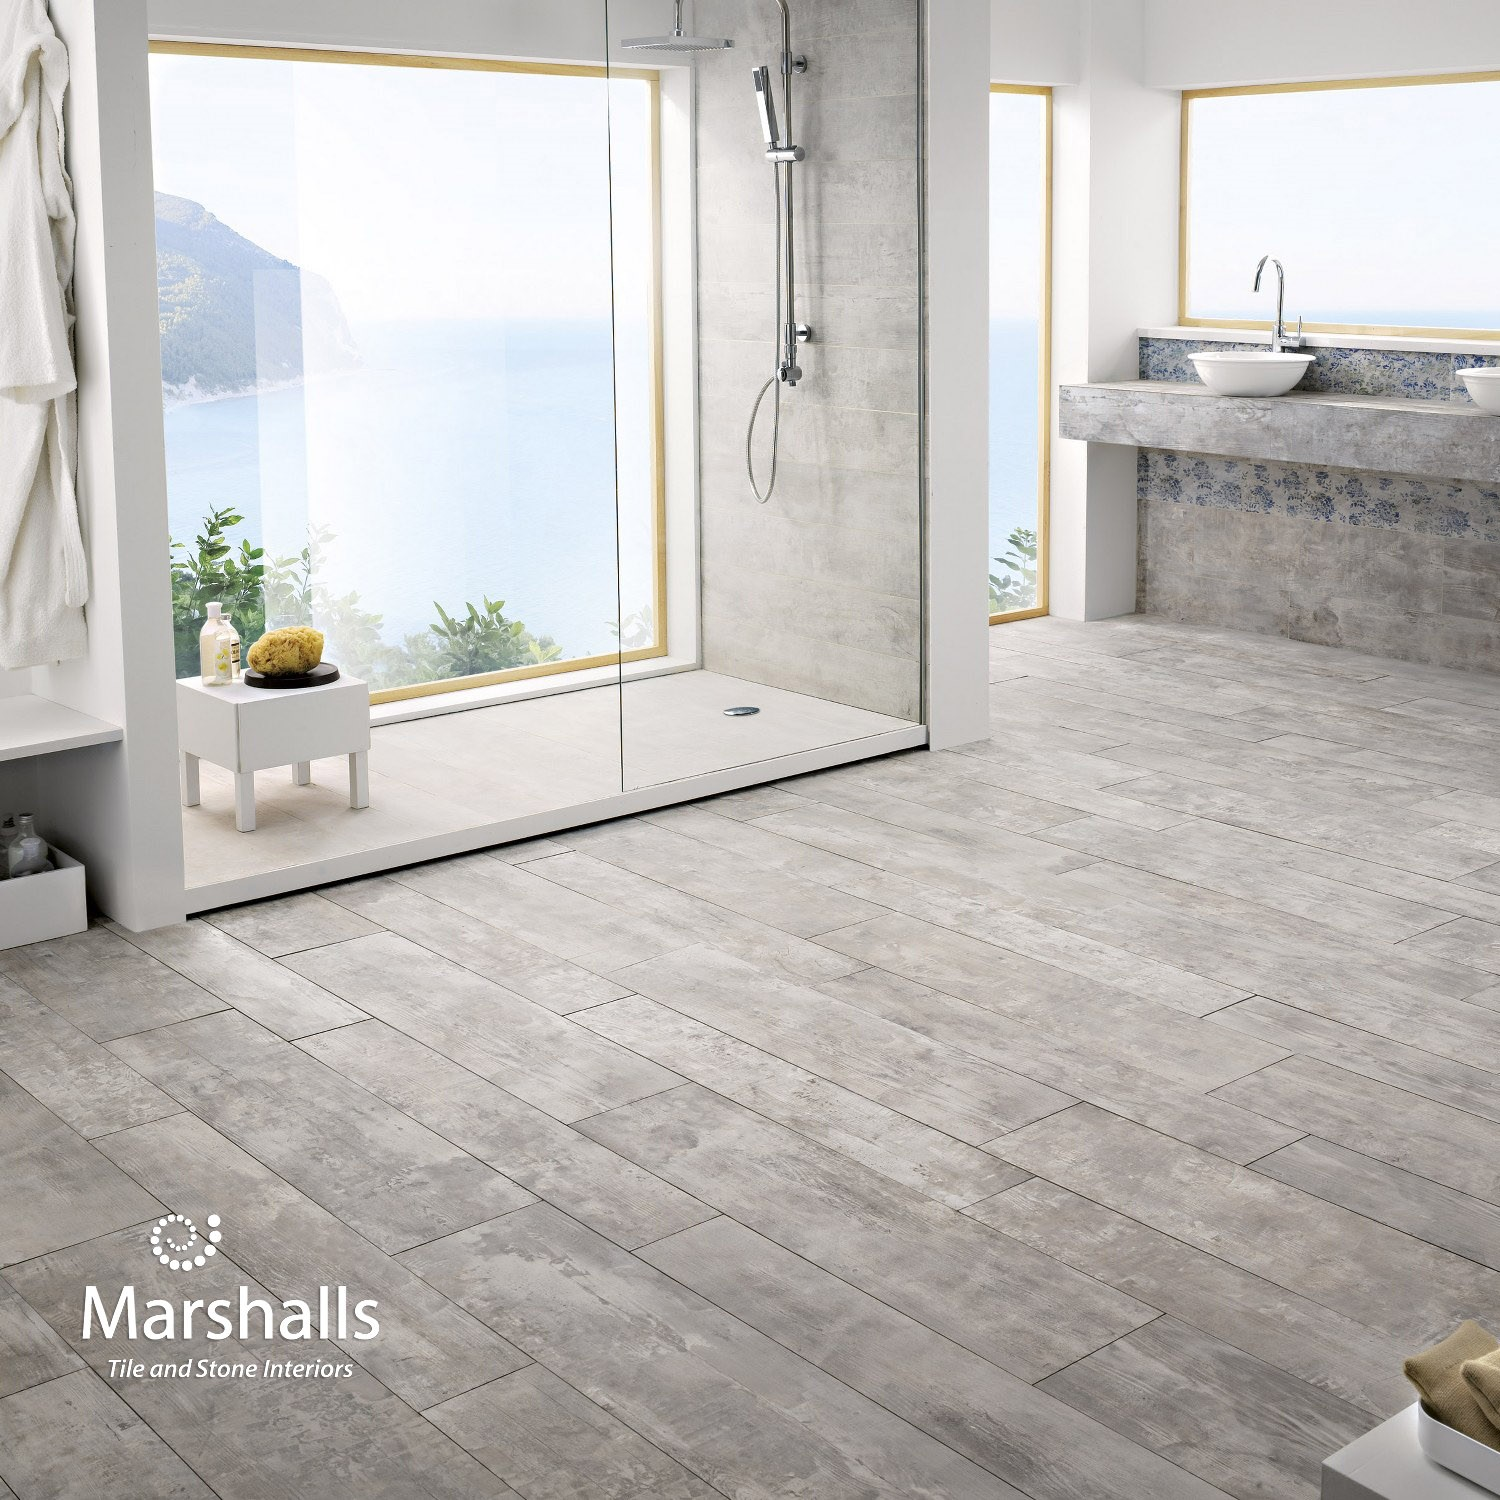 Kitchen Tiles Edinburgh: Marshalls Driftwood, Nassau